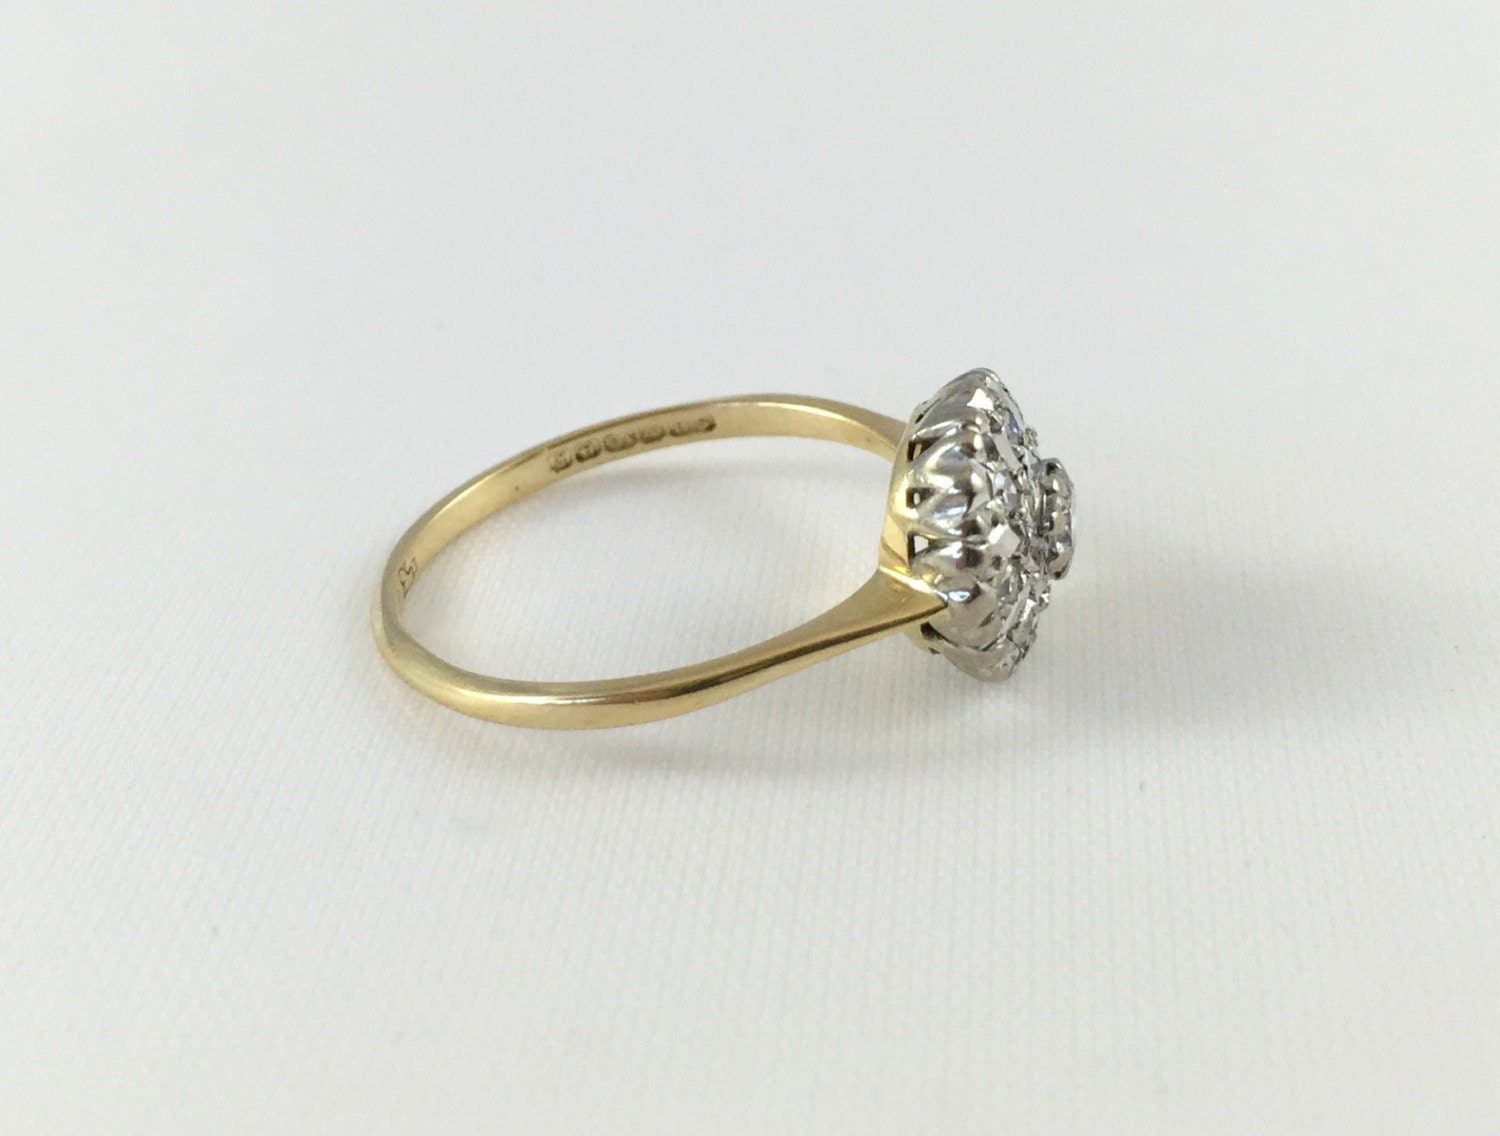 18k Vintage Two Tone Yellow And White Gold Diamond Cluster Engagement Ring